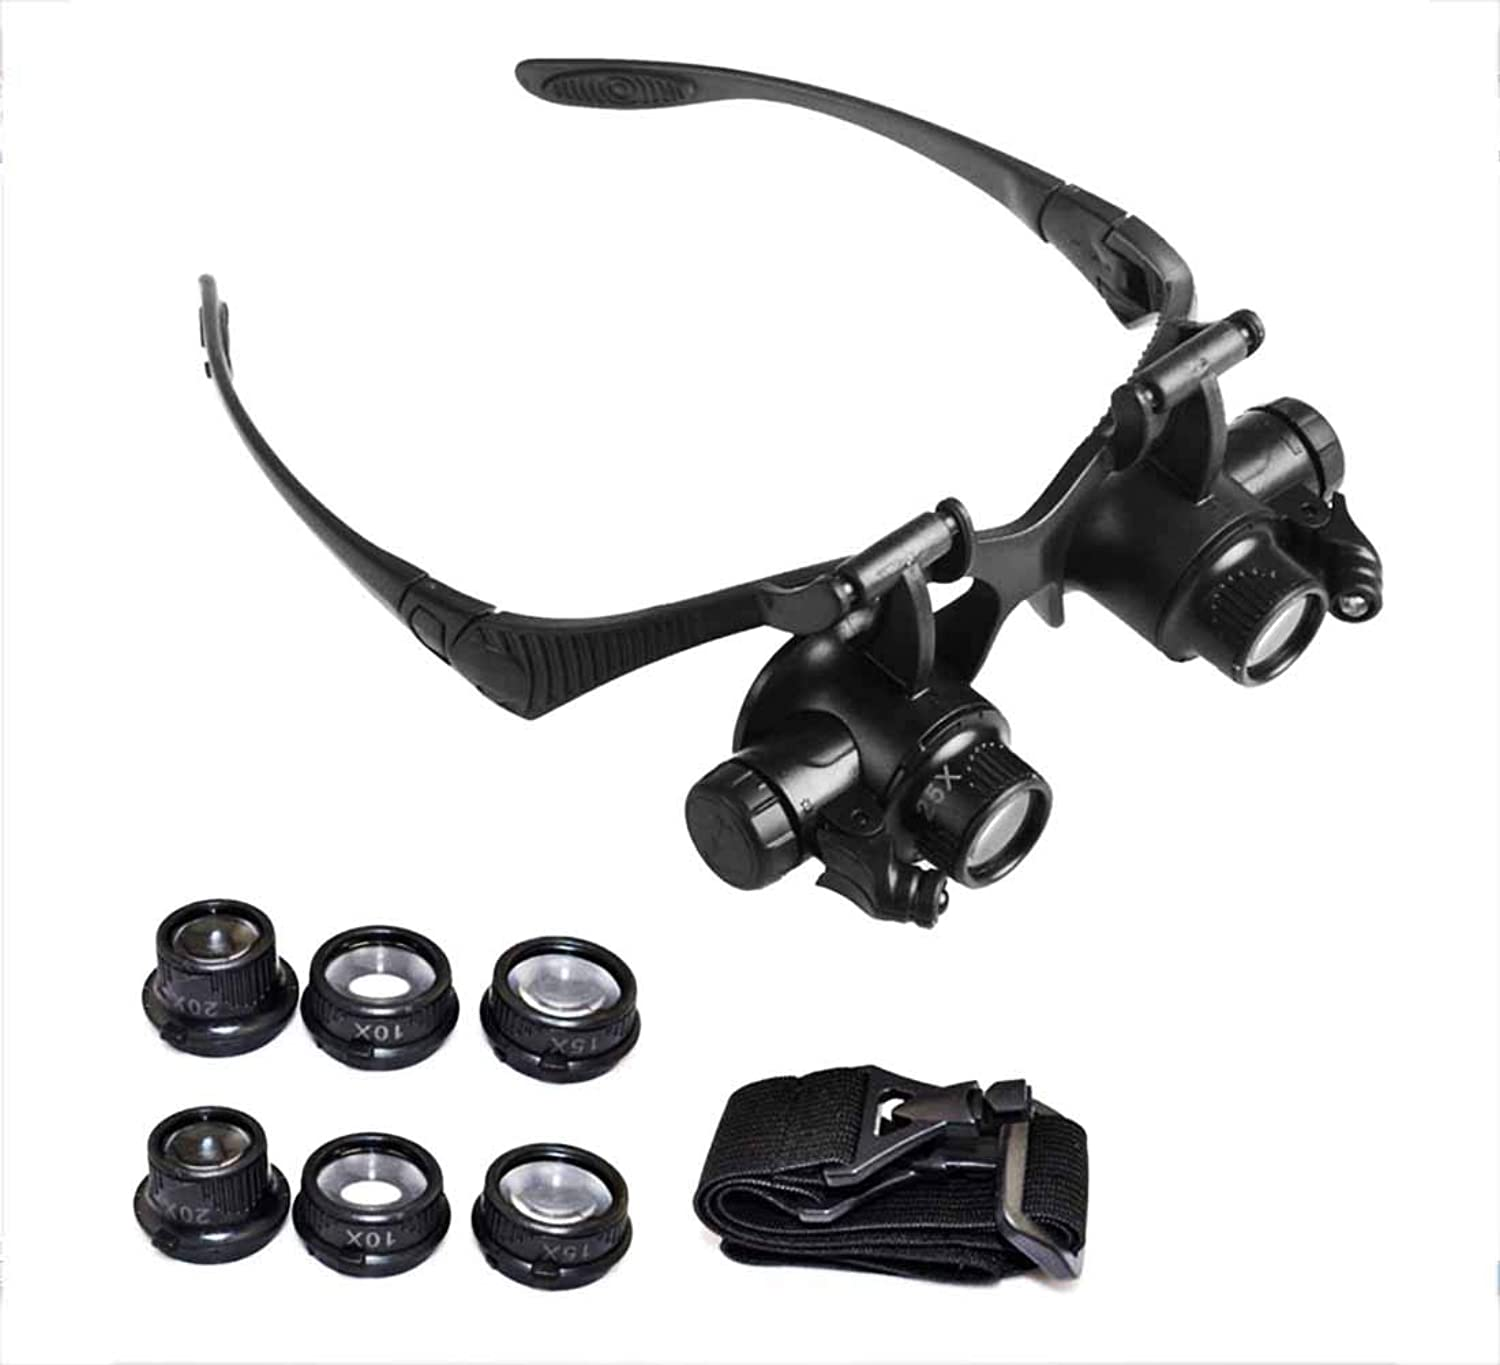 HeadMounted Magnifier 4 Replaceable Lenses LED Light Battery Powered Magnifier Glasses Magnifier